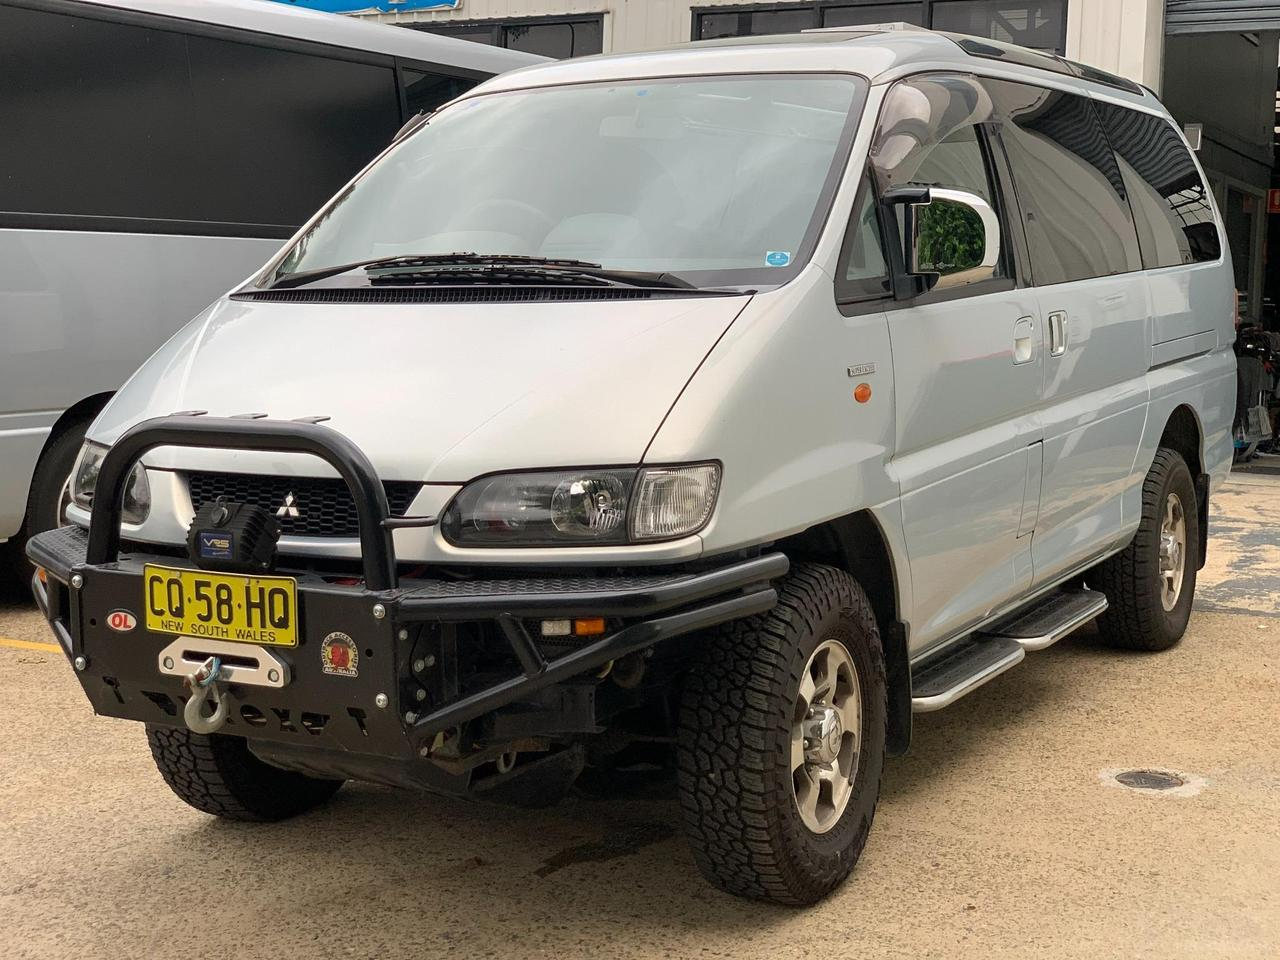 The 2003 Delica gets a little rougher and tougher thanks to its off-road bumper with bull bar and winch